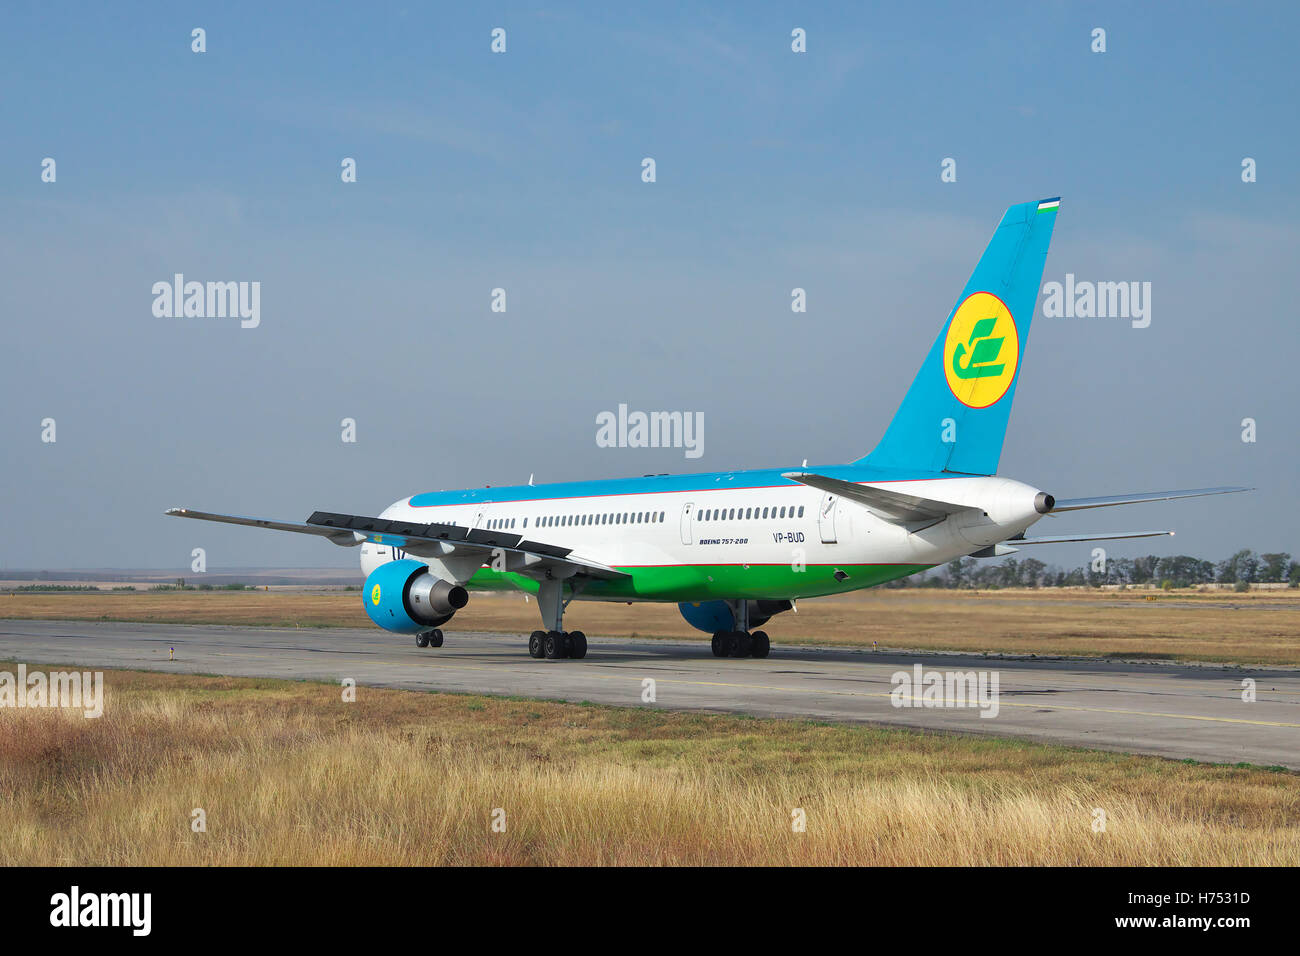 Simferopol, Ukraine - September 13, 2010: Uzbekistan Airways Boeing 757 taxiing along the taxiway after landing - Stock Image